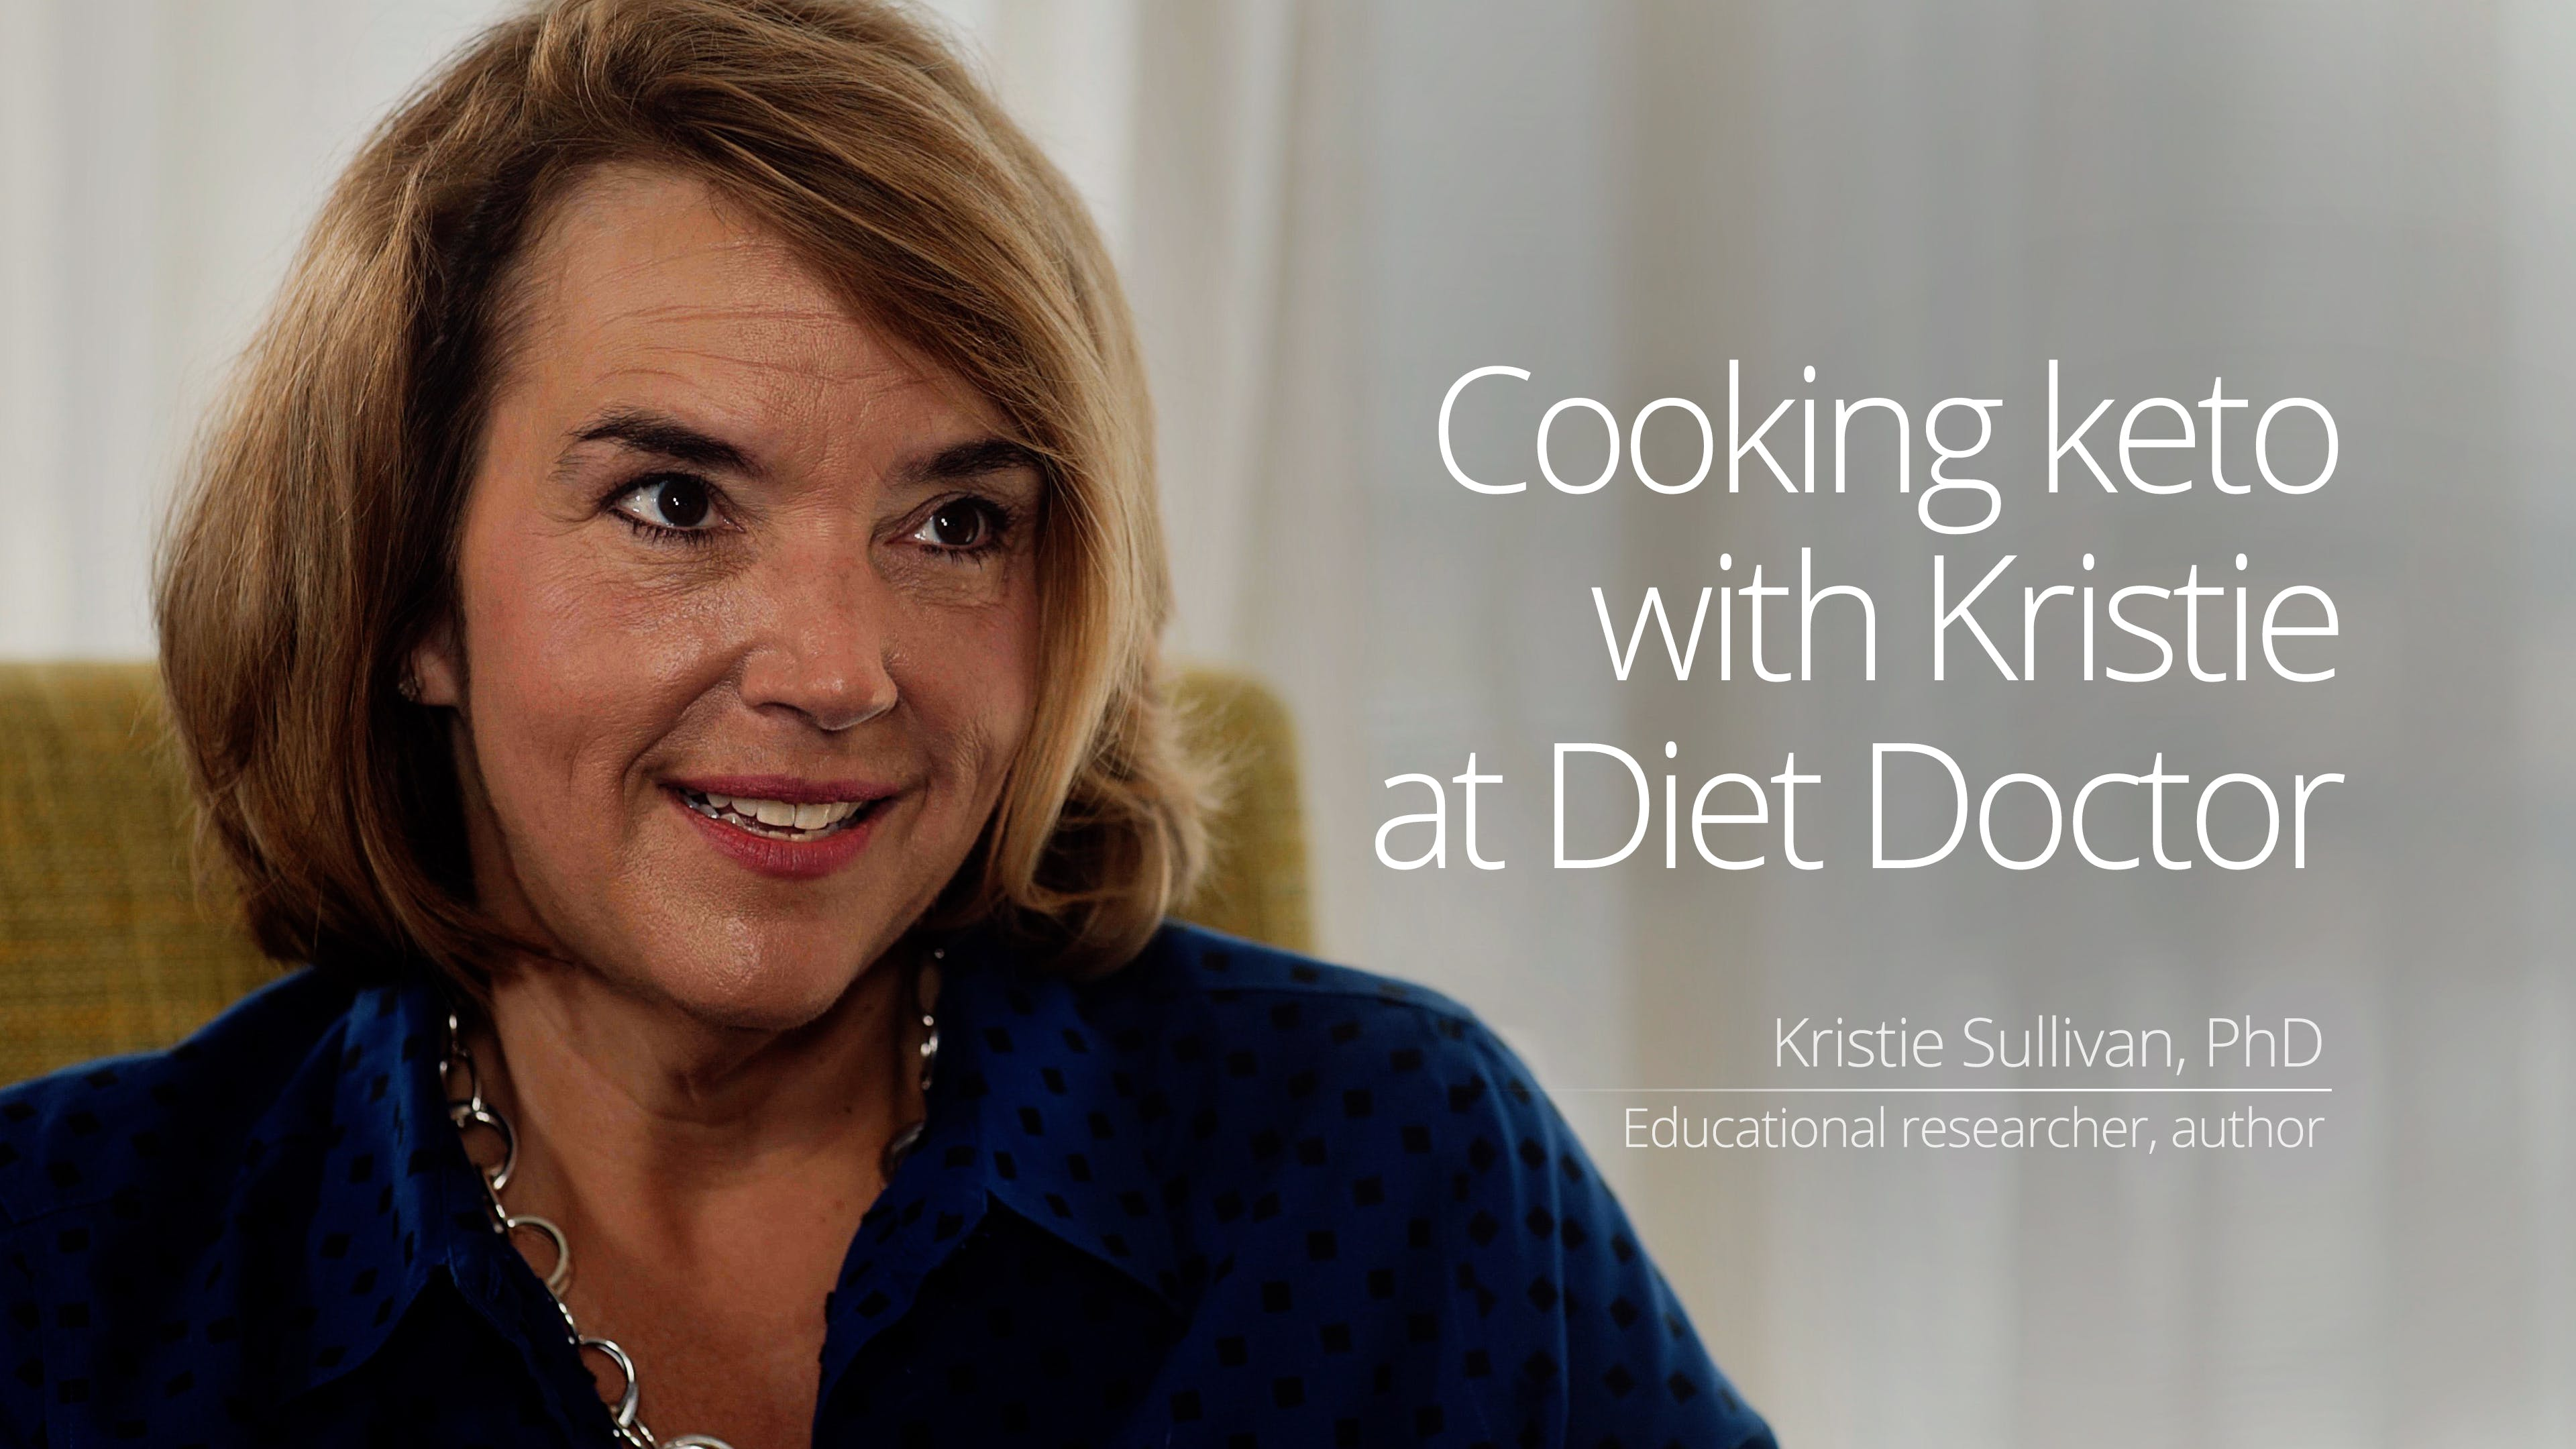 Coming soon: Cooking keto with Kristie